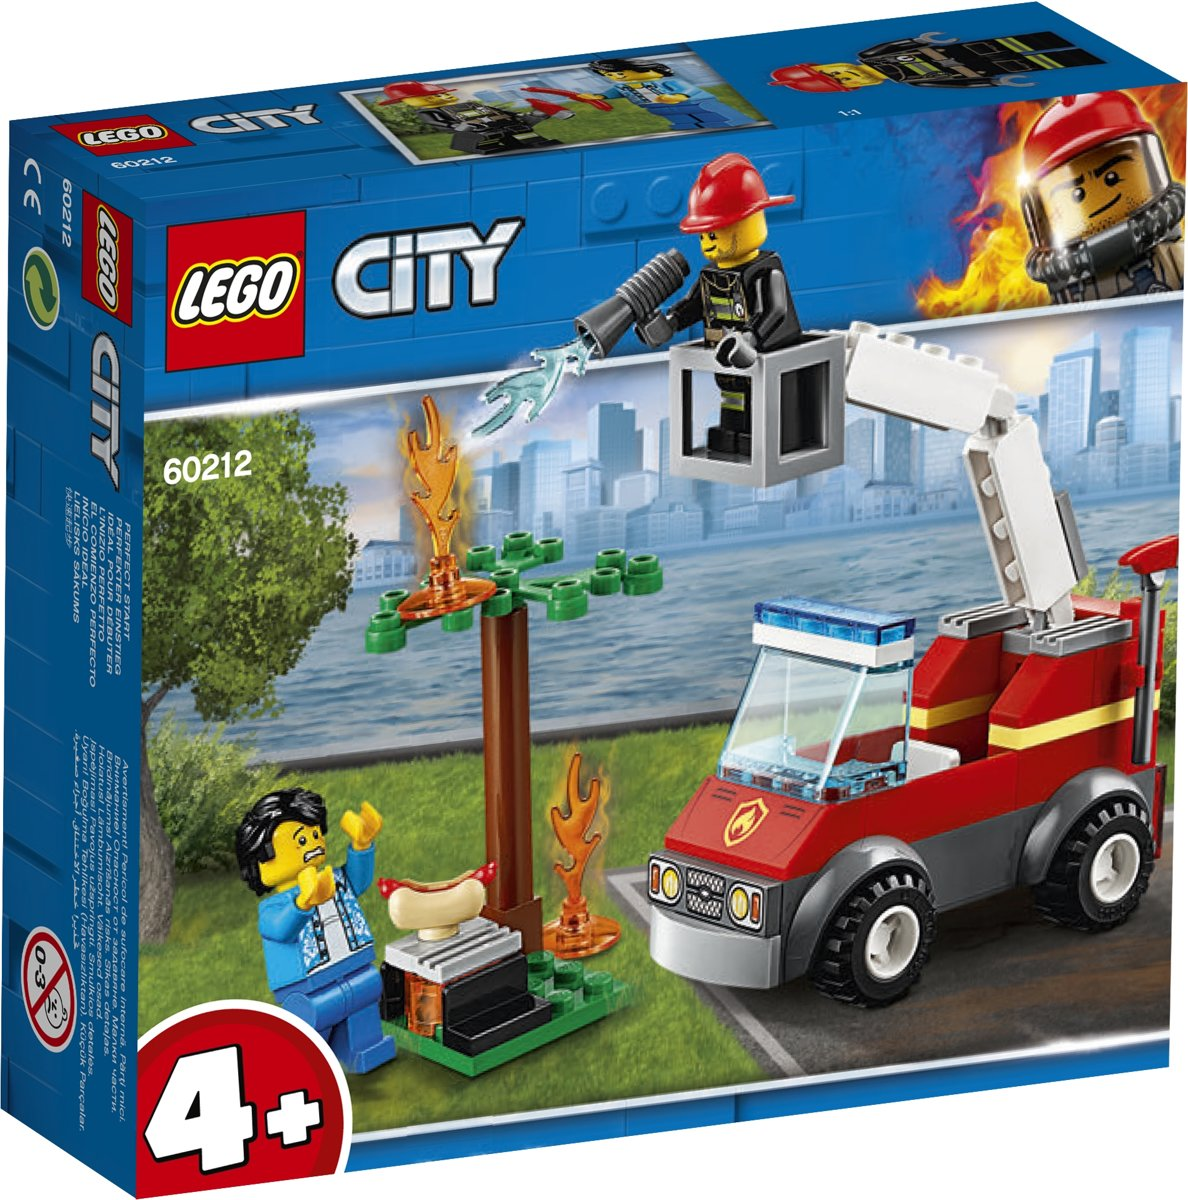 LEGO 4+ City Barbecuebrand Blussen - 60212